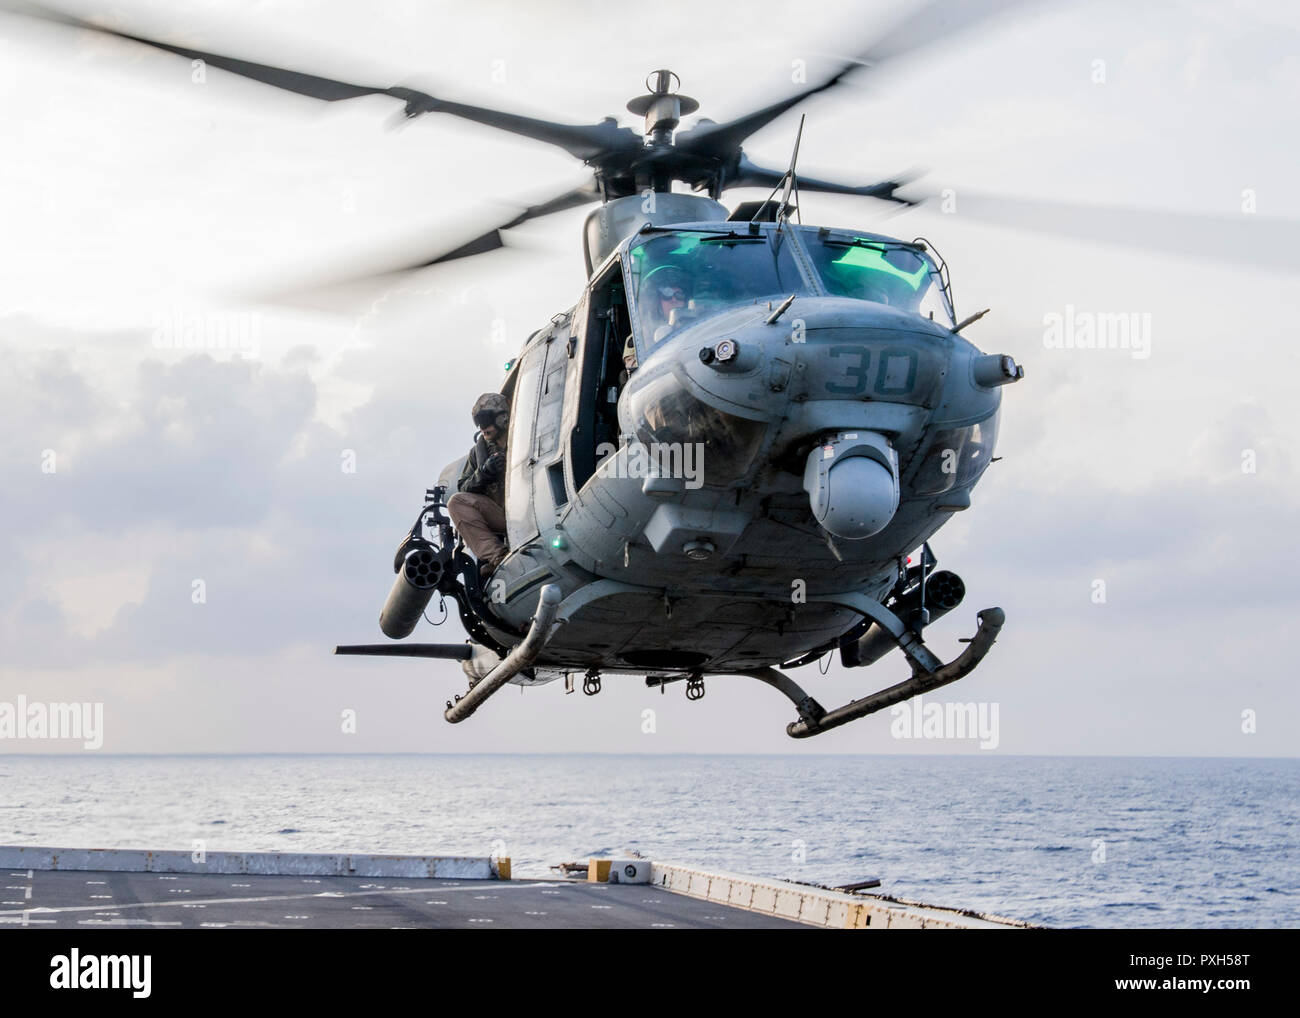 181020-N-PH222-1116 MEDITERRANEAN SEA (Oct. 20, 2018) A UH-1Y Venom helicopter, attached to Marine Medium Tiltrotor Squadron (VMM) 166 (Reinforced), conducts flight operations from the flight deck of the San Antonio-class amphibious transport dock ship USS Anchorage (LPD 23) in the Mediterranean Sea, Oct. 20, 2018. Anchorage and embarked 13th Marine Expeditionary Unit are deployed to the U.S. 6th Fleet area of operations as a crisis response force in support of regional partners as well as to promote U.S. national security interests in Europe and Africa. (U.S. Navy photo by Mass Communication  - Stock Image